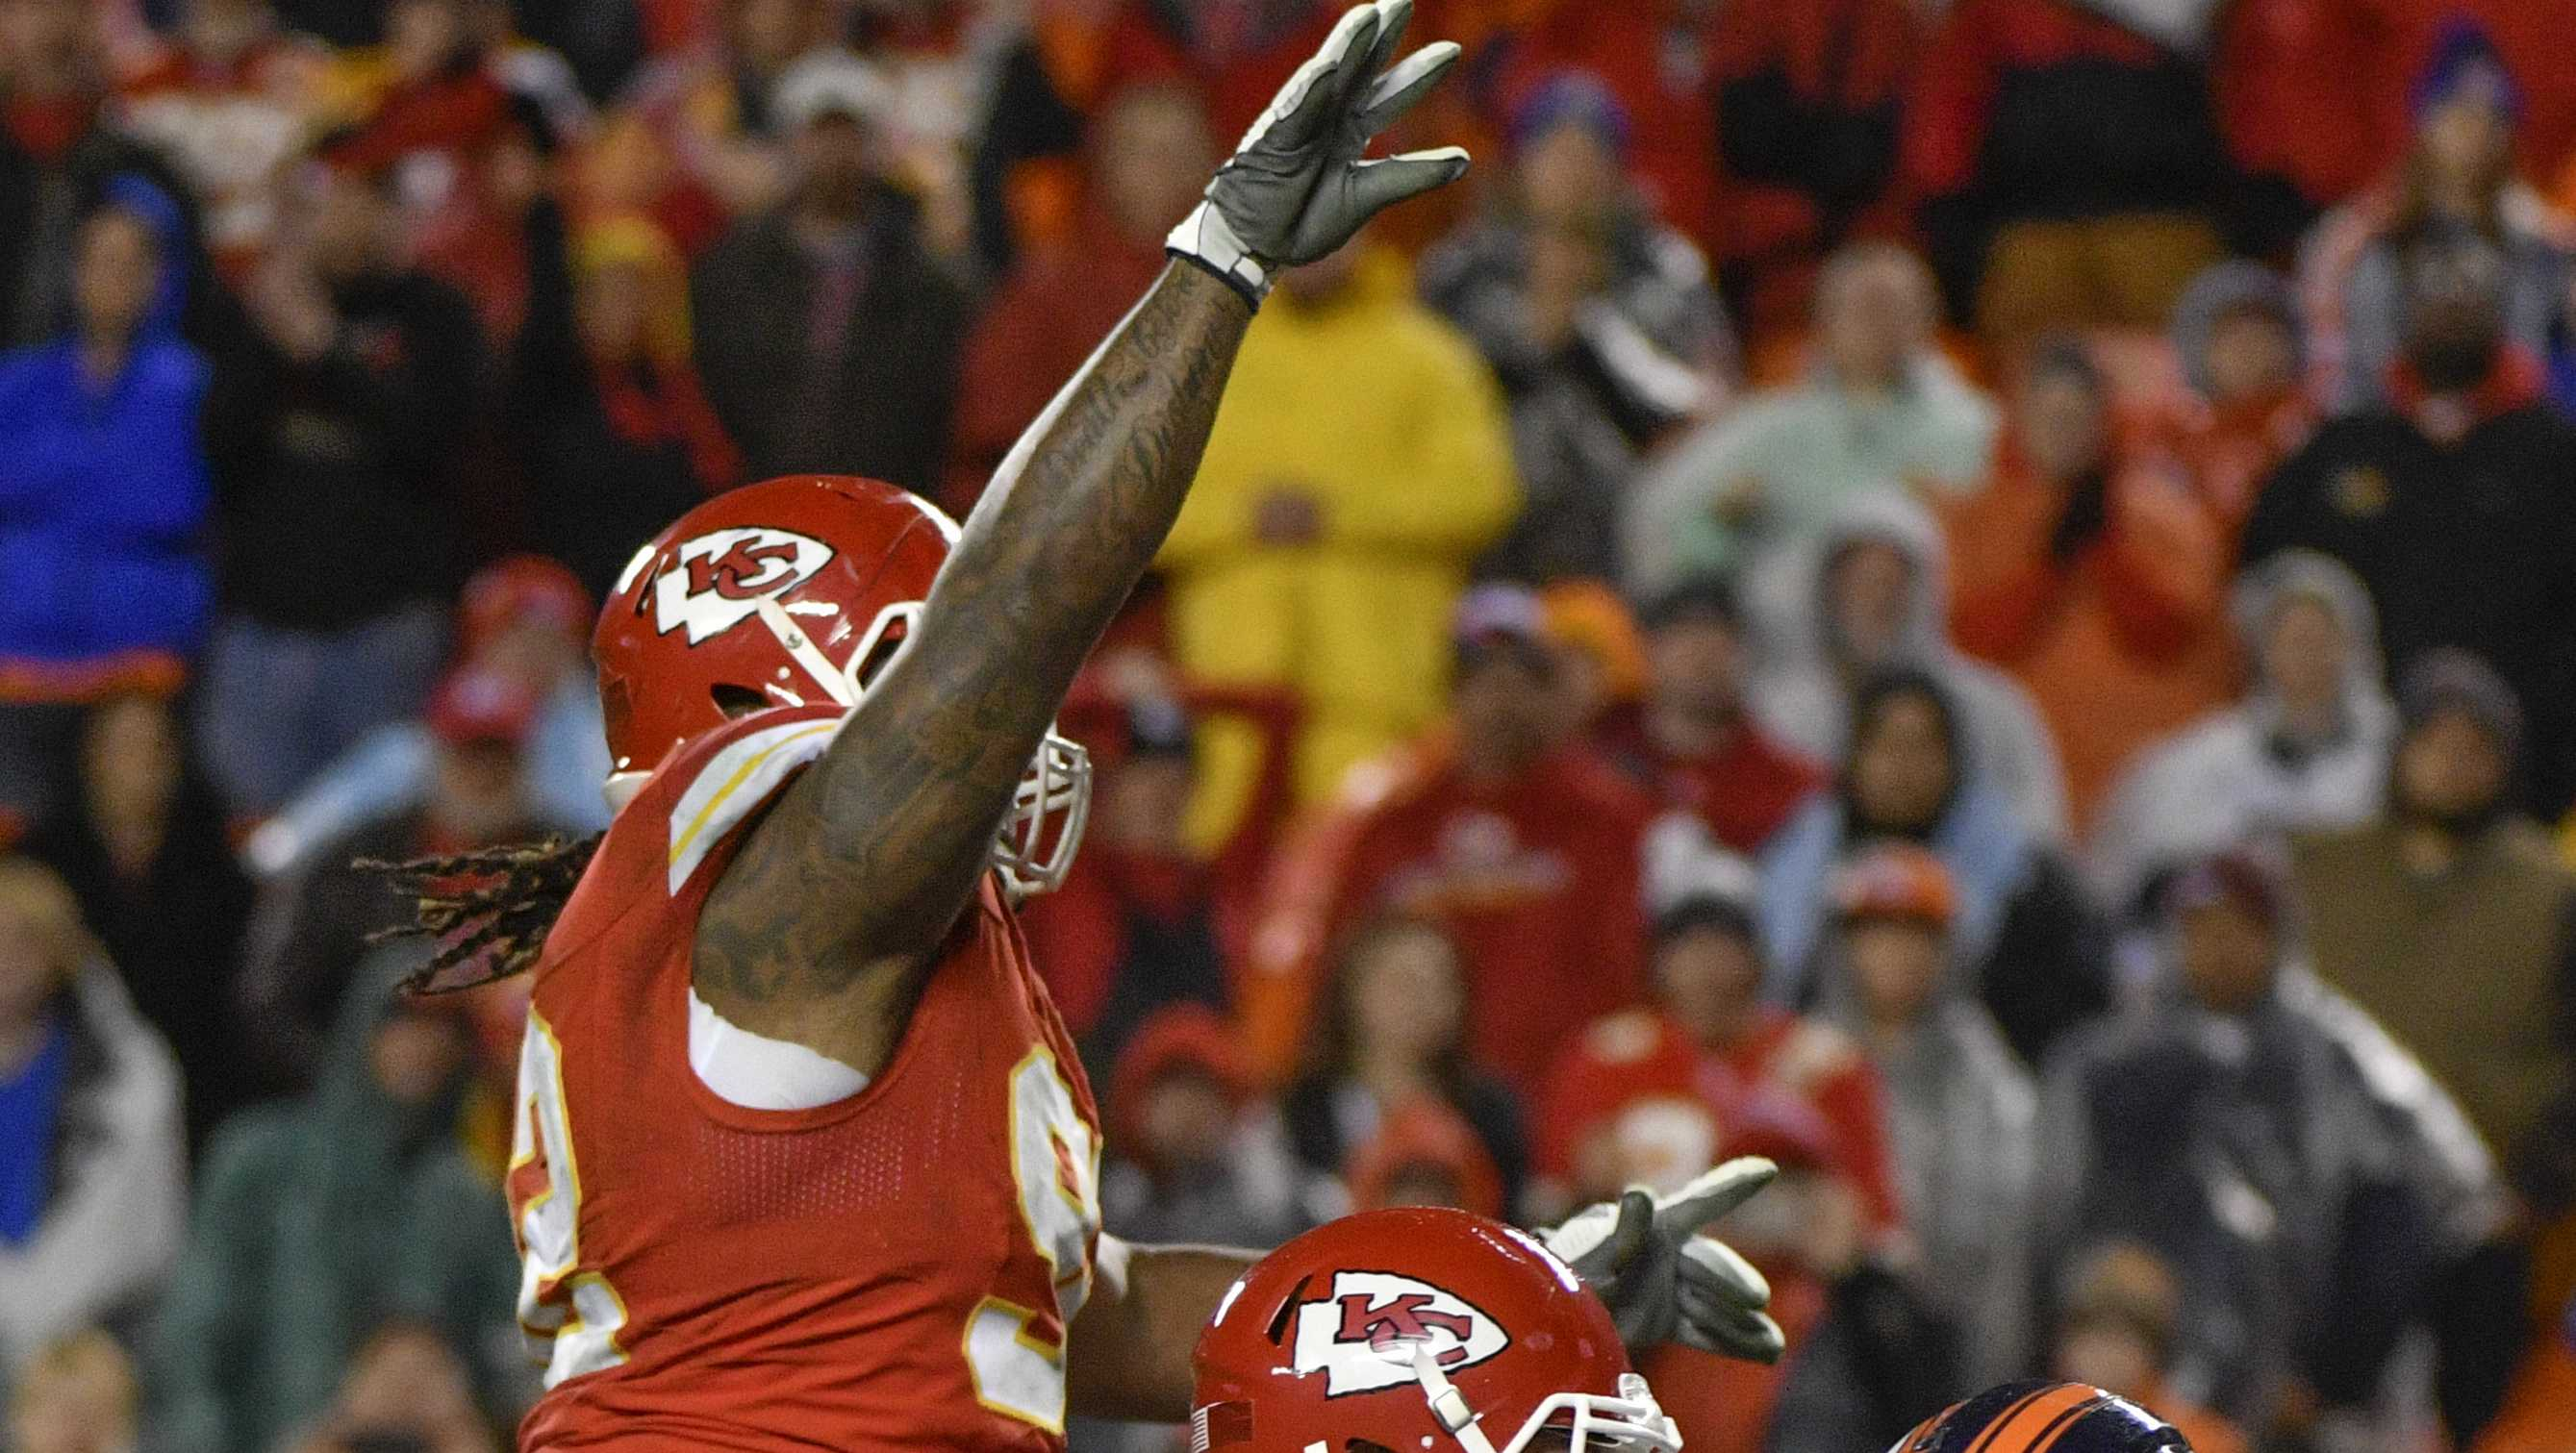 In this Sunday, Dec. 25, 2016 photo, Kansas City Chiefs defensive lineman Dontari Poe, top left, who lined up as quarterback, throws a touchdown pass to tight end Demetrius Harris, as Chiefs offensive lineman Jah Reid (75) blocks Denver Broncos linebacker Von Miller (58) during the second half of an NFL football game Kansas City.